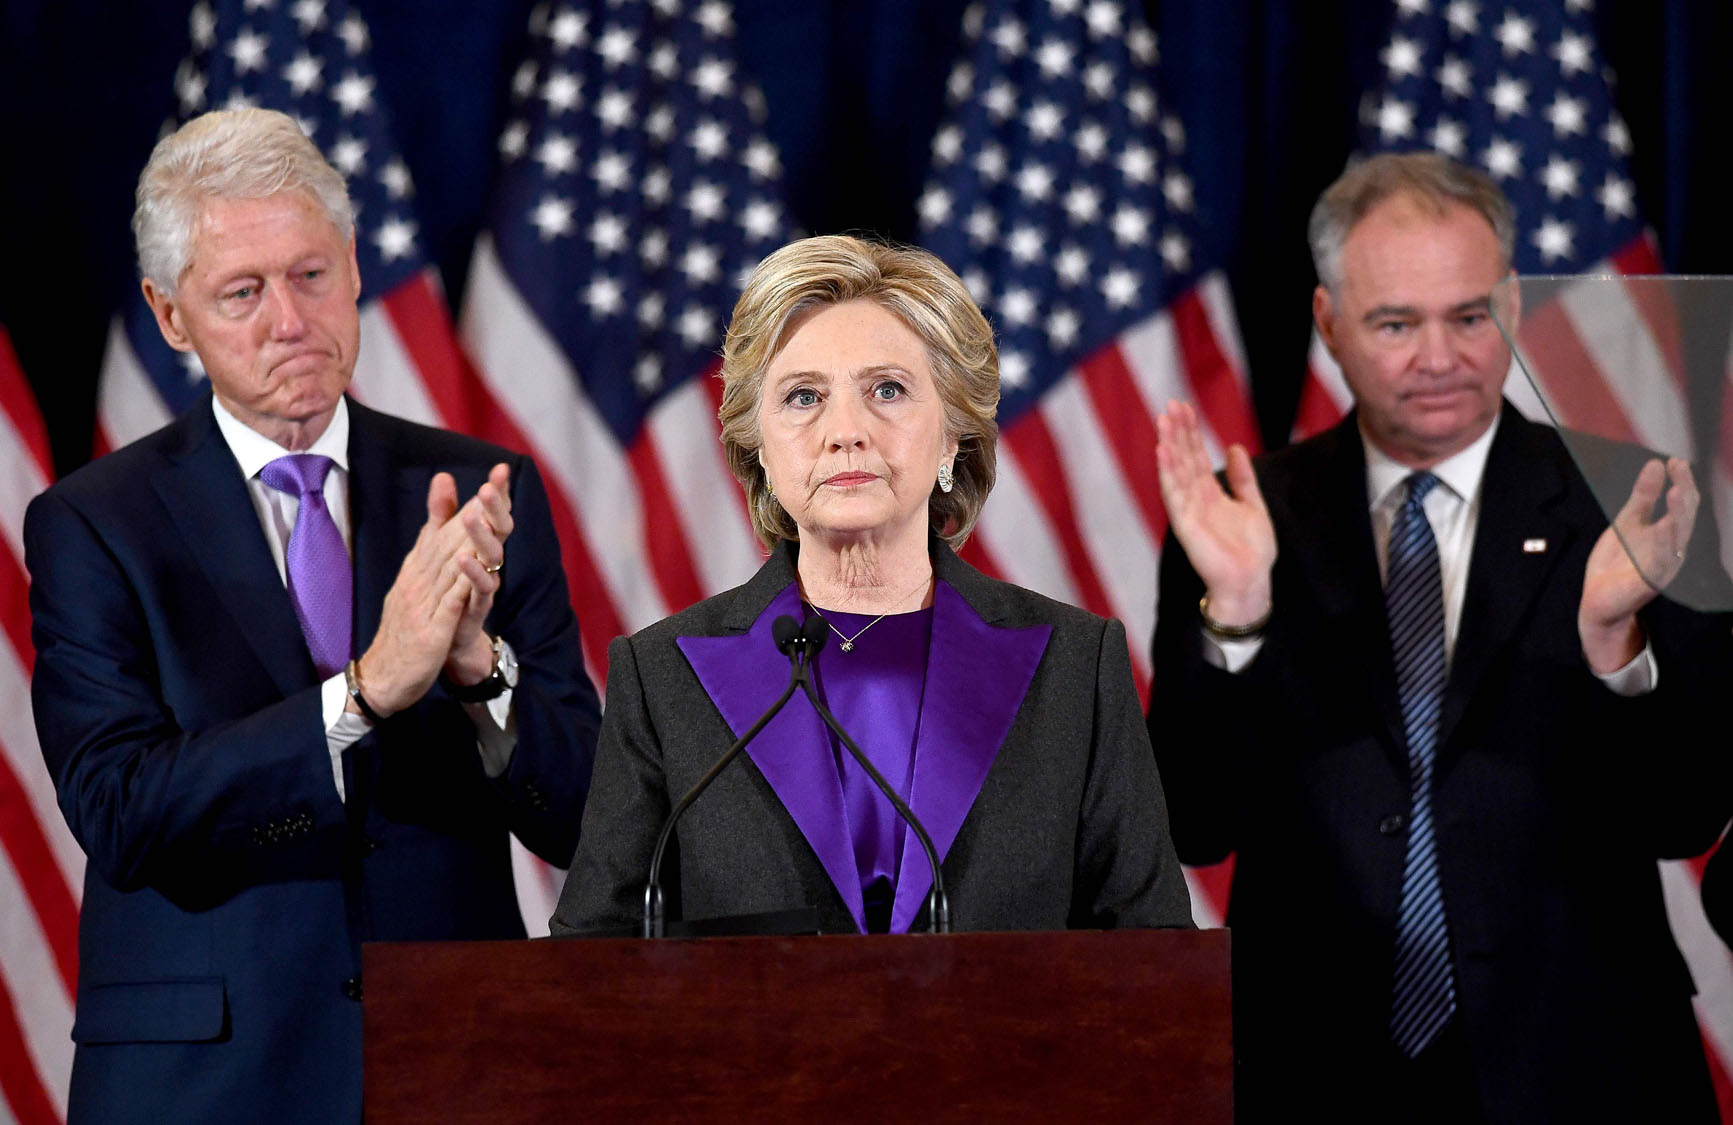 Hillary Clinton makes concession speech after defeat by Donald Trump